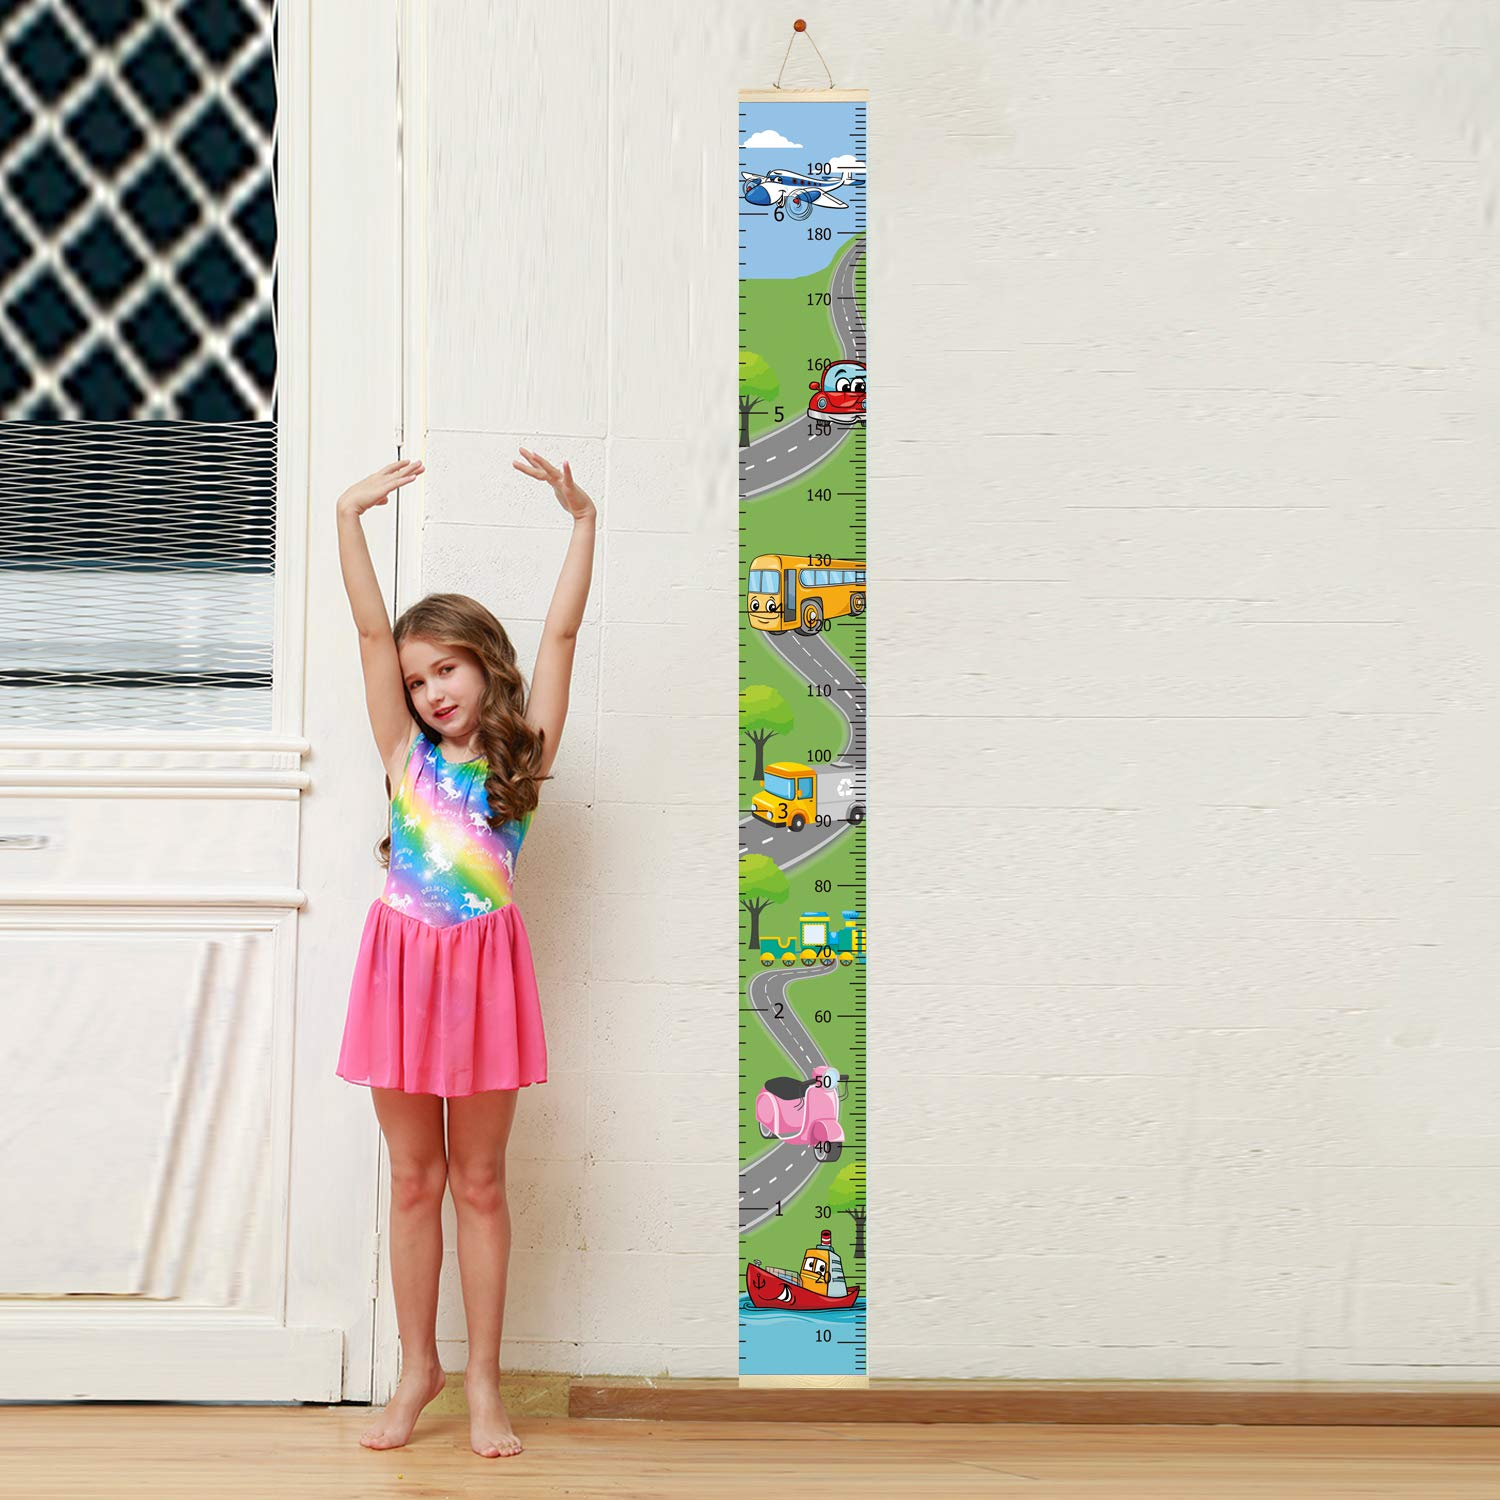 Wood Frame Canvas Roll Up Height Chart Wall Hanging Ruler for Kids Bedroom Nursery Wall Decoration Unique Baby Shower Gift 79x7.9 Baby Kids Growth Chart